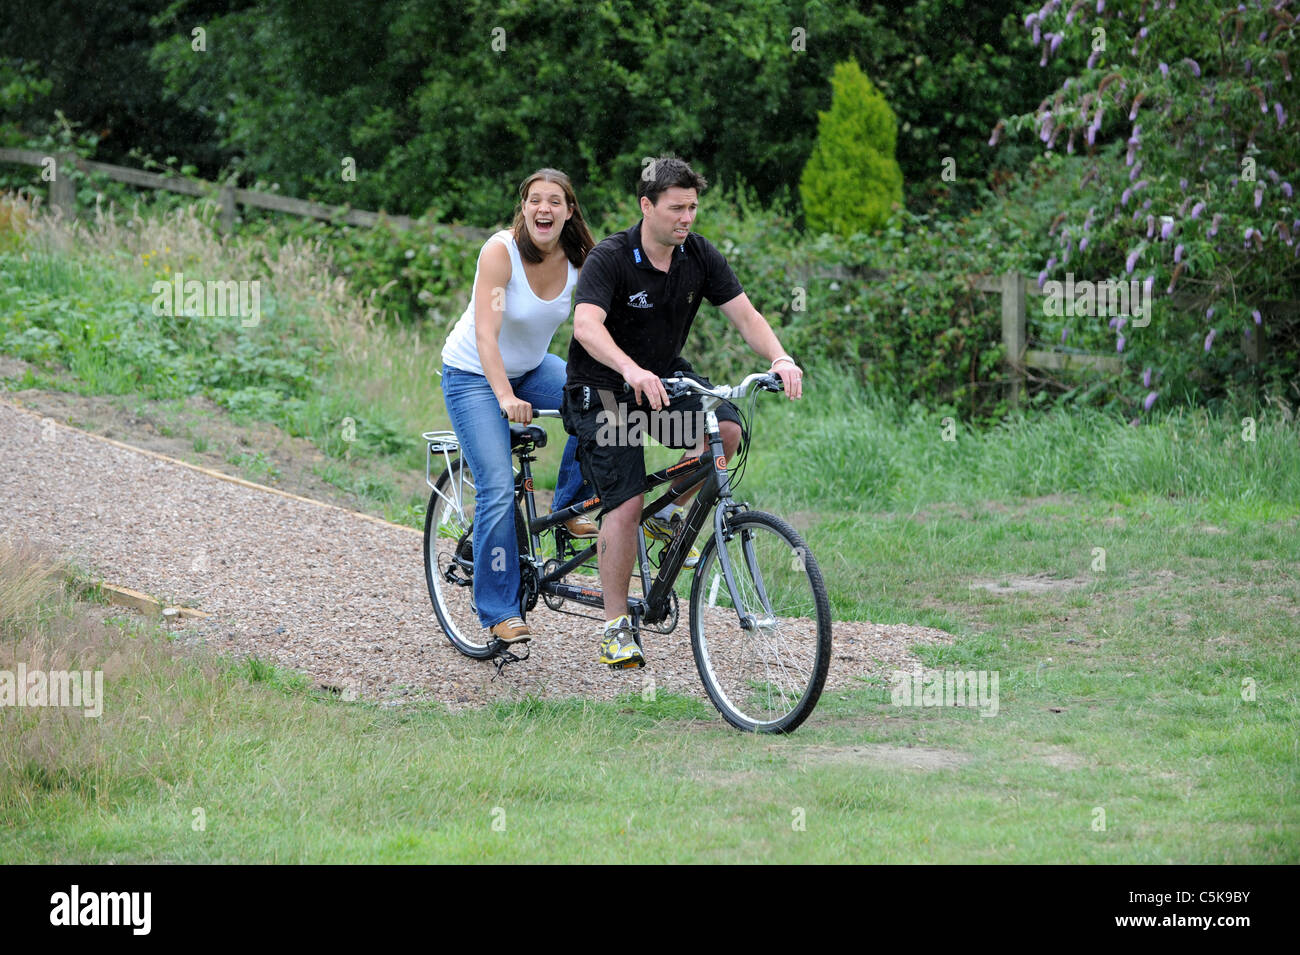 Woman and man having fun on tandem bicycle uk - Stock Image